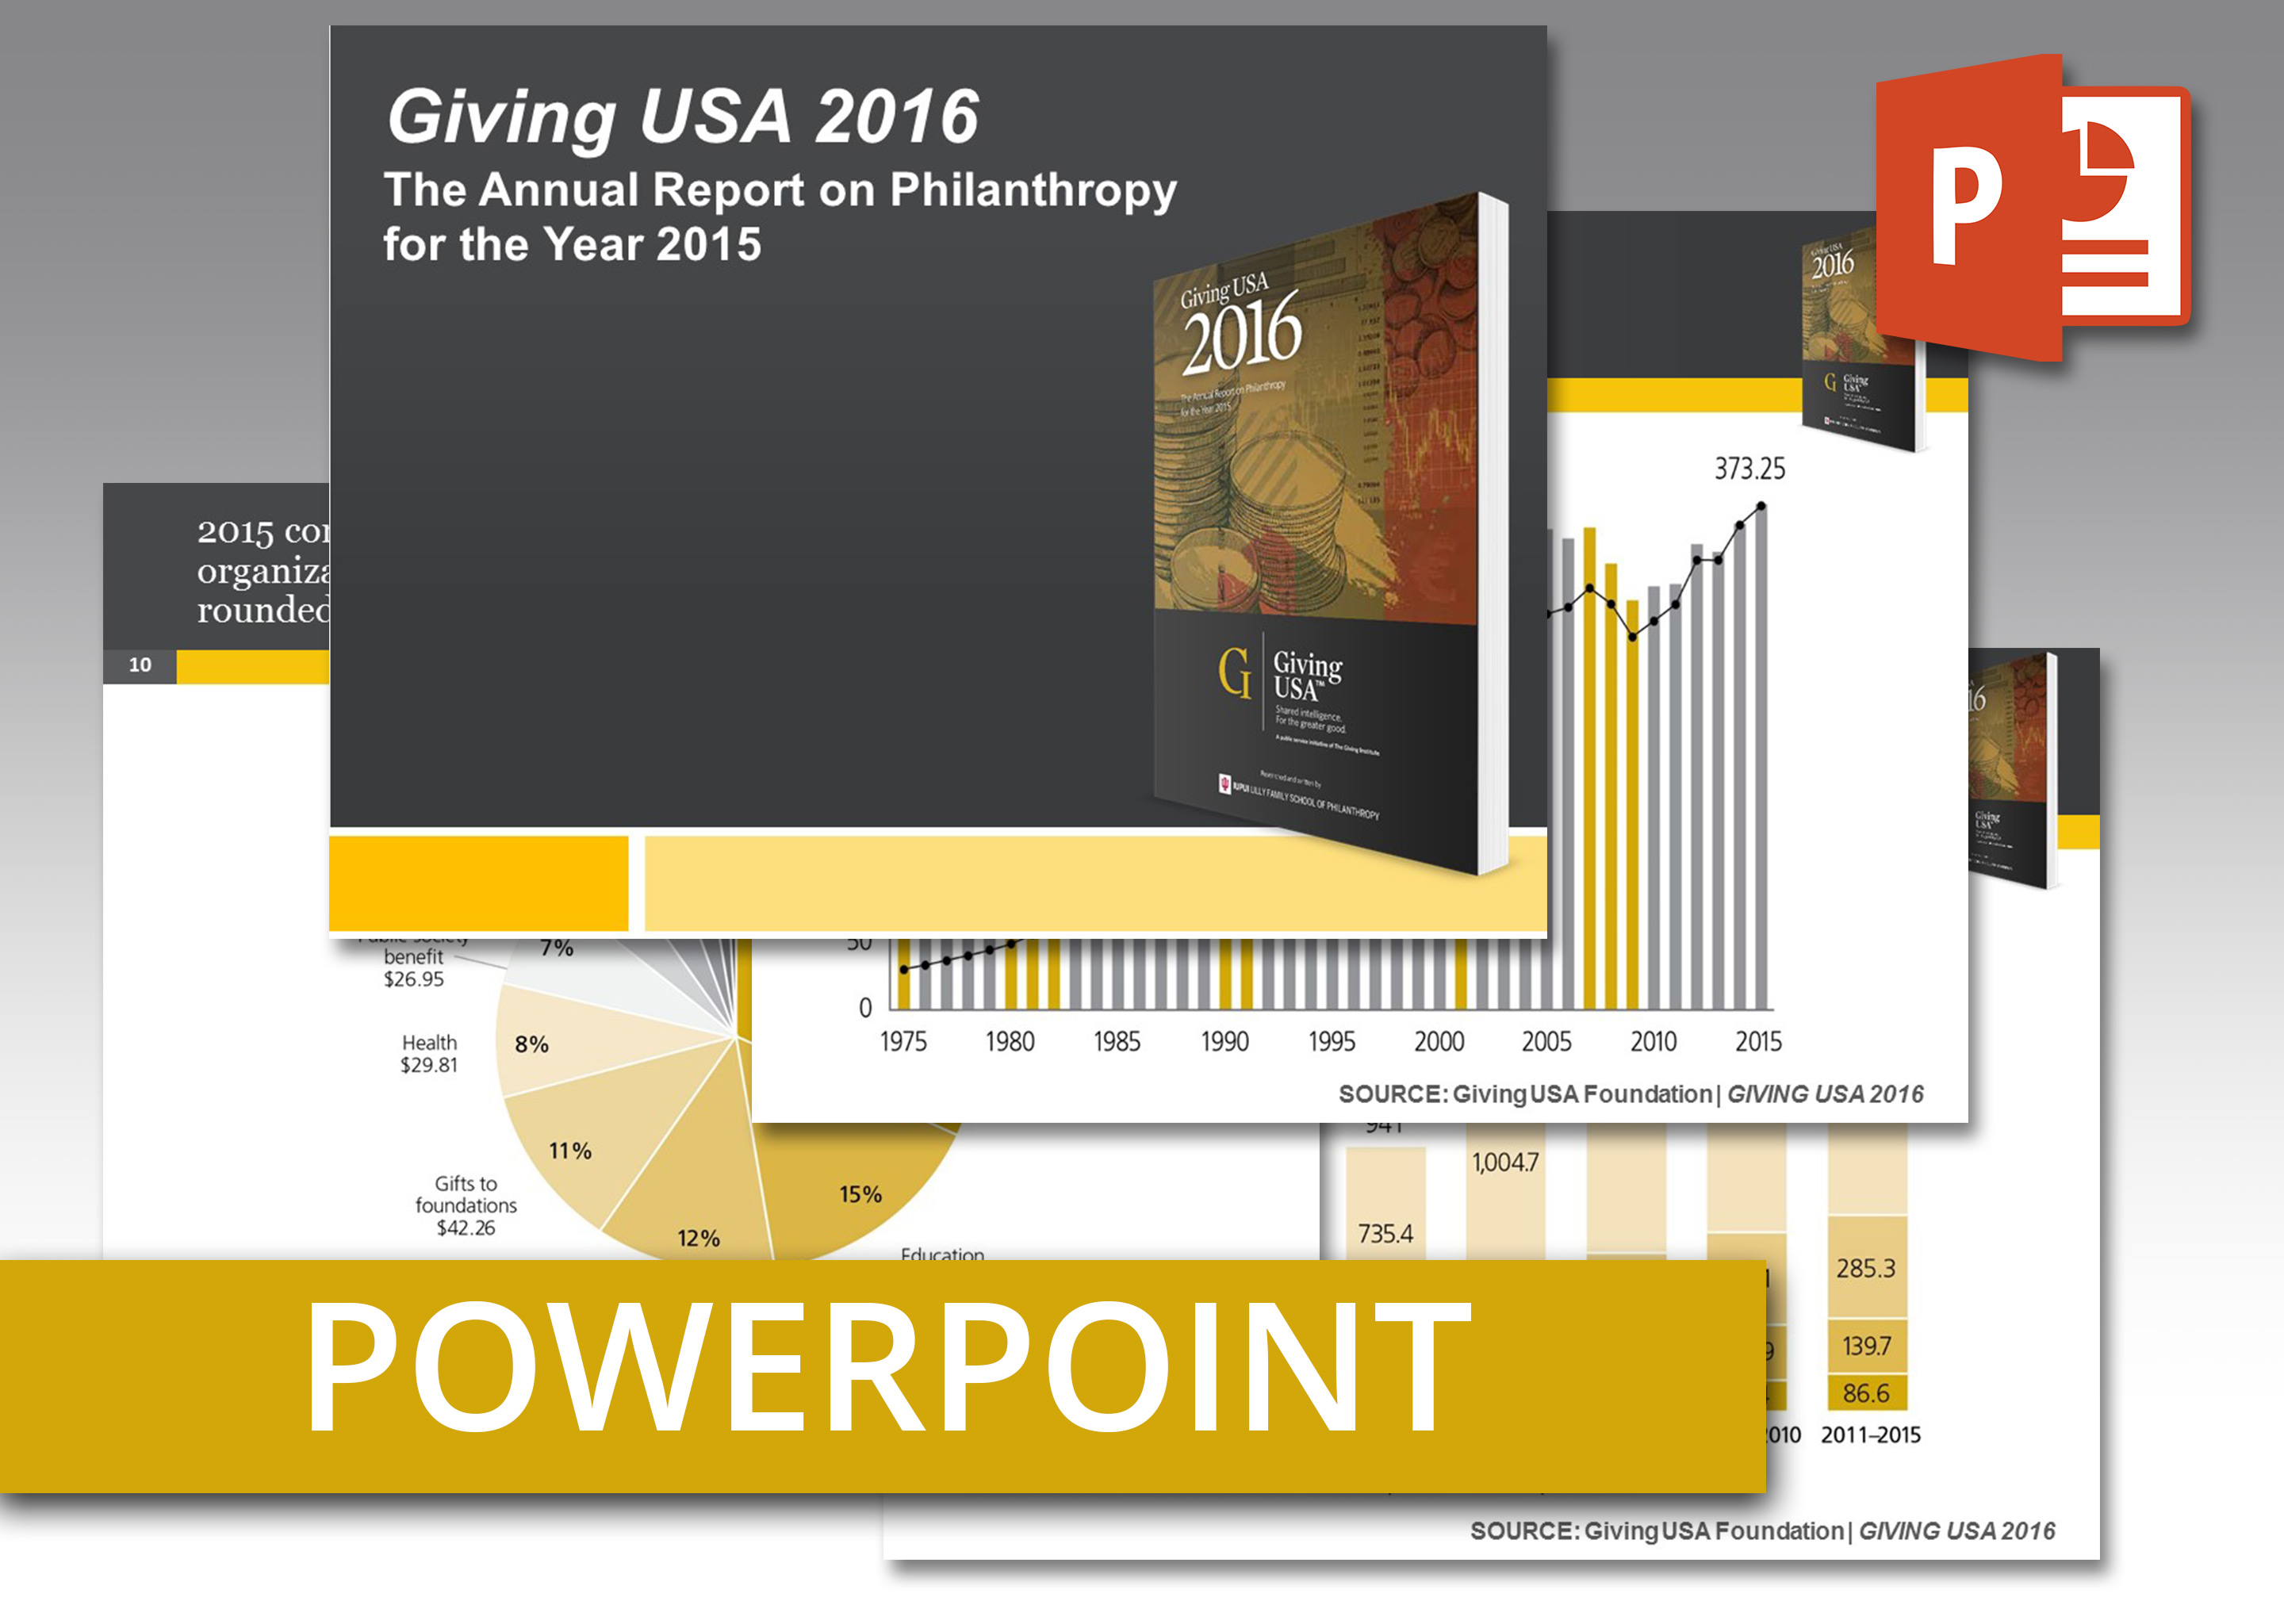 Coolmathgamesus  Wonderful Giving Usa  Powerpoint An Easytouse Presentation Of Report  With Goodlooking Giving Usa  Powerpoint An Easytouse Presentation Of Report Findings Including Talking Points With Easy On The Eye Free Powerpoint Product Key Also Download Powerpoint Template Free In Addition Animations For Powerpoint  And Powerpoint Agenda Examples As Well As Powerpoint Animated Clip Art Free Download Additionally Powerpoint Templates D From Givingusaorg With Coolmathgamesus  Goodlooking Giving Usa  Powerpoint An Easytouse Presentation Of Report  With Easy On The Eye Giving Usa  Powerpoint An Easytouse Presentation Of Report Findings Including Talking Points And Wonderful Free Powerpoint Product Key Also Download Powerpoint Template Free In Addition Animations For Powerpoint  From Givingusaorg